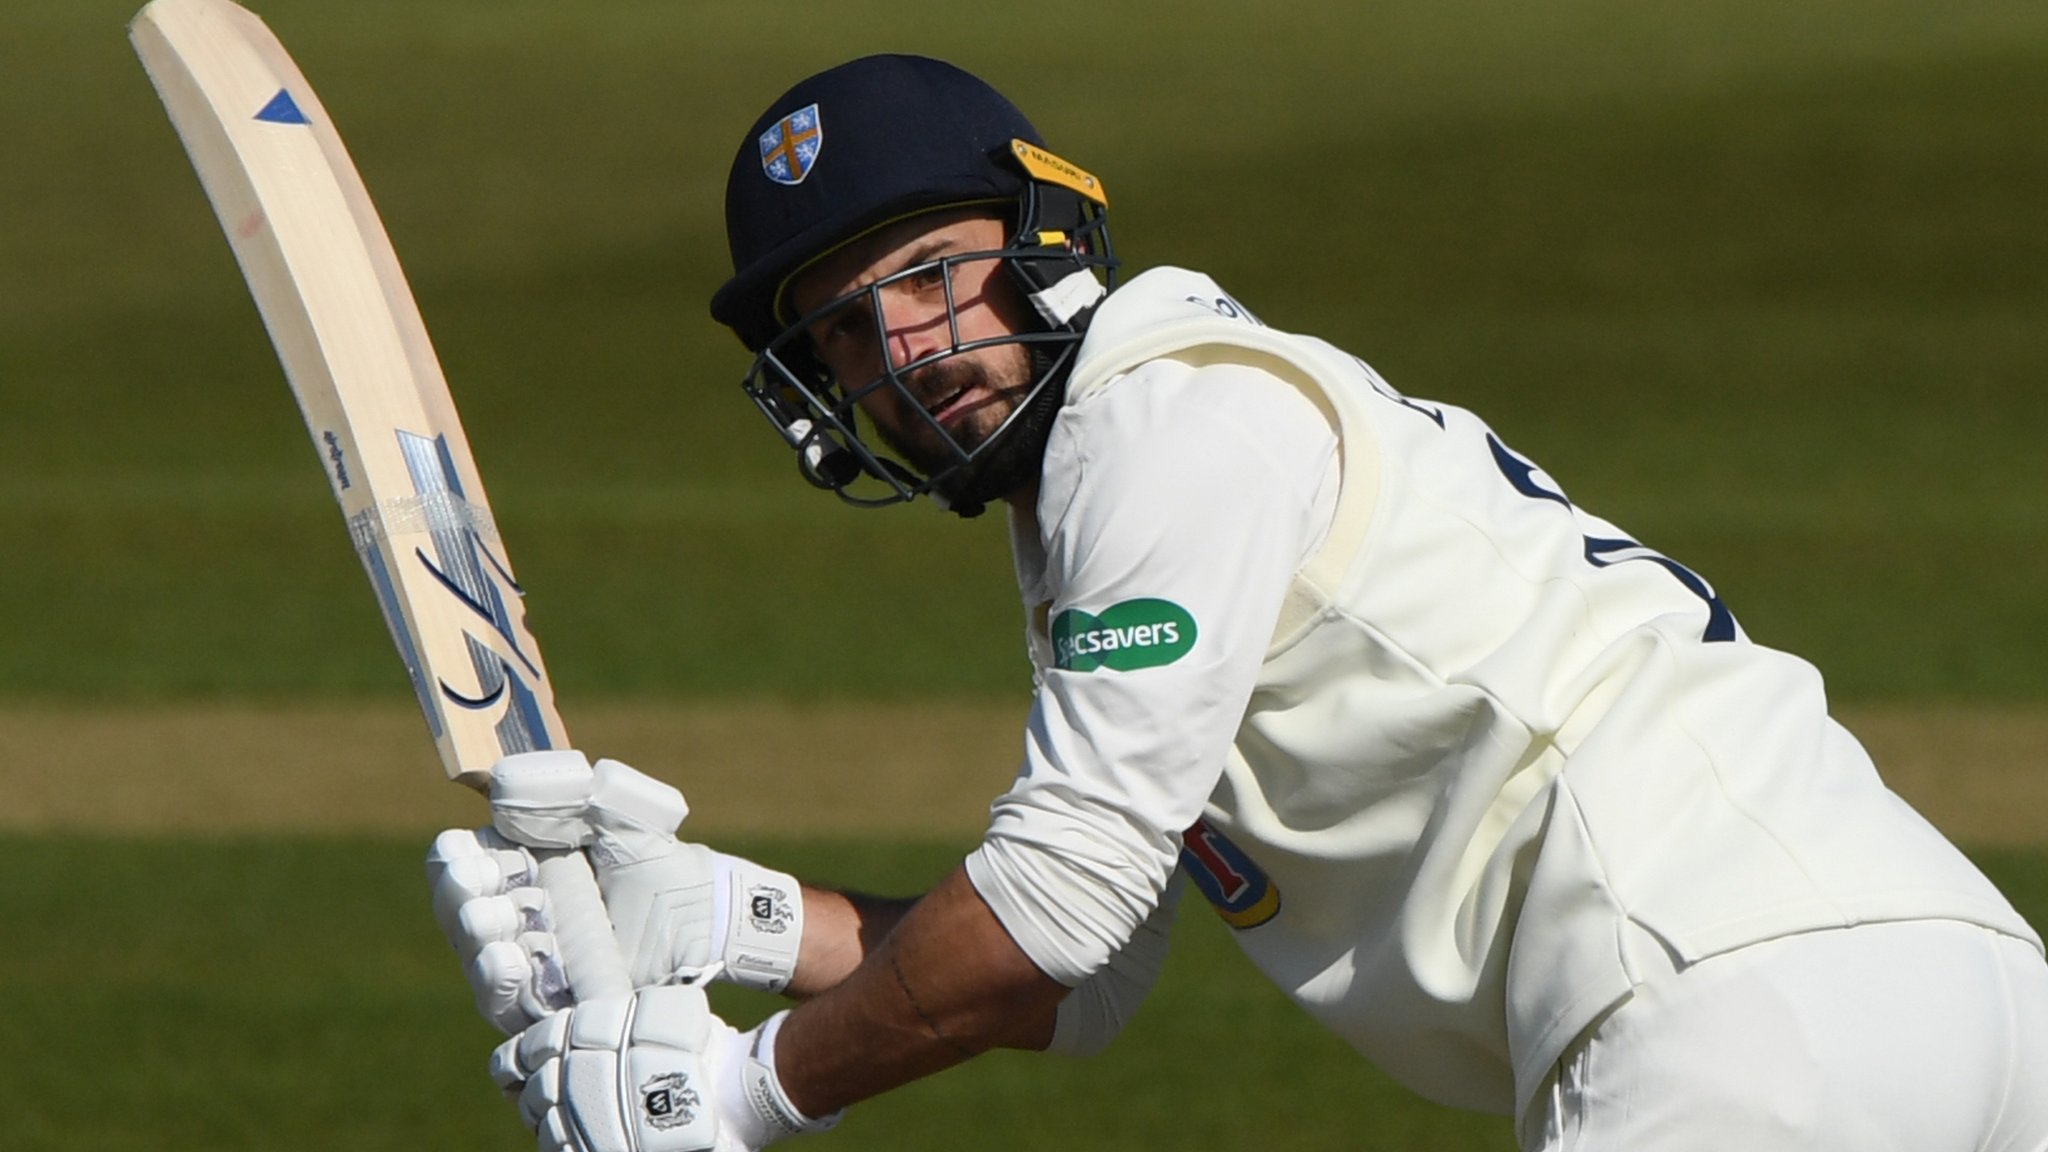 County Championship: Ned Eckersley ton helps Durham gain upper hand over Sussex